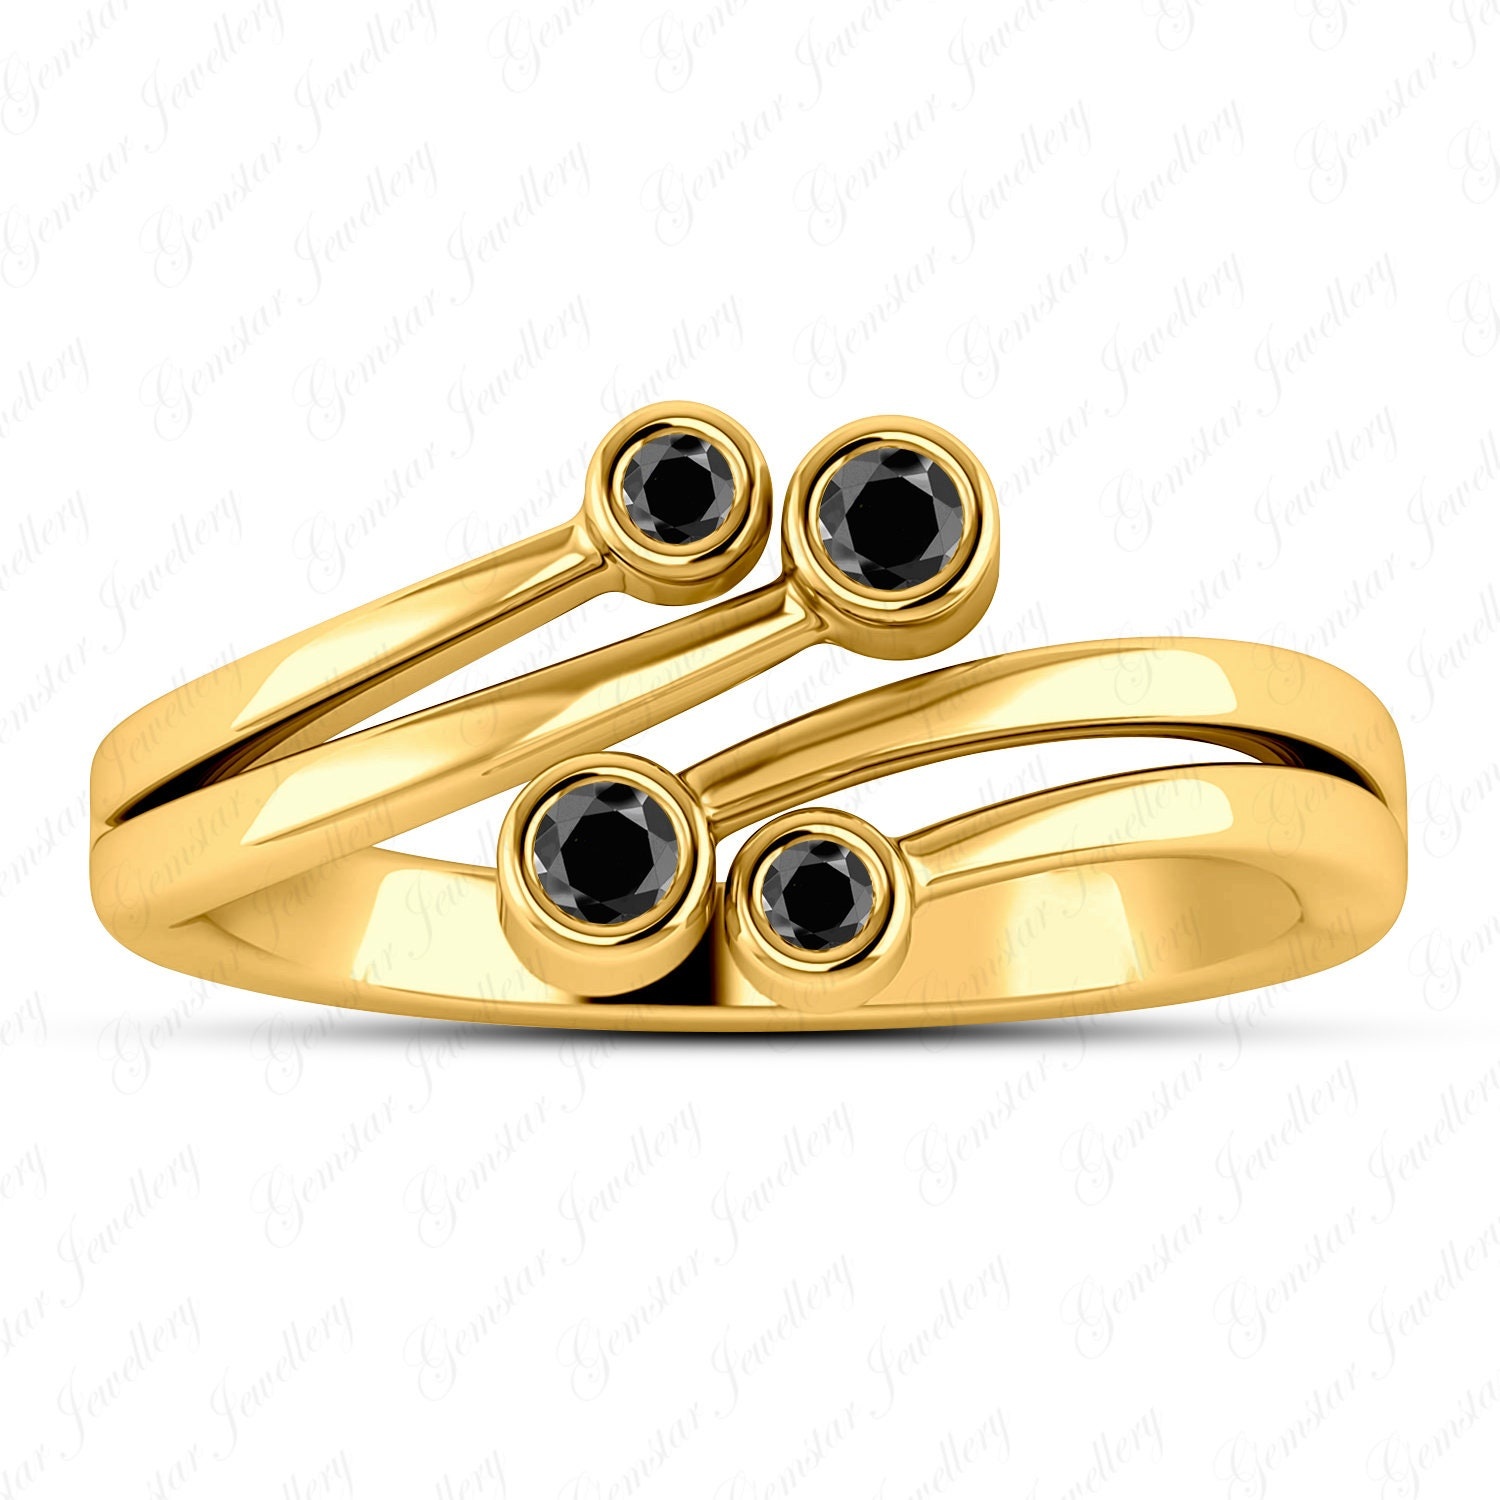 Gemstar Jewellery Round Black Sim Diamond 925 Silver 14k Yellow Gold Finish Bypass Adjustable Toe Ring